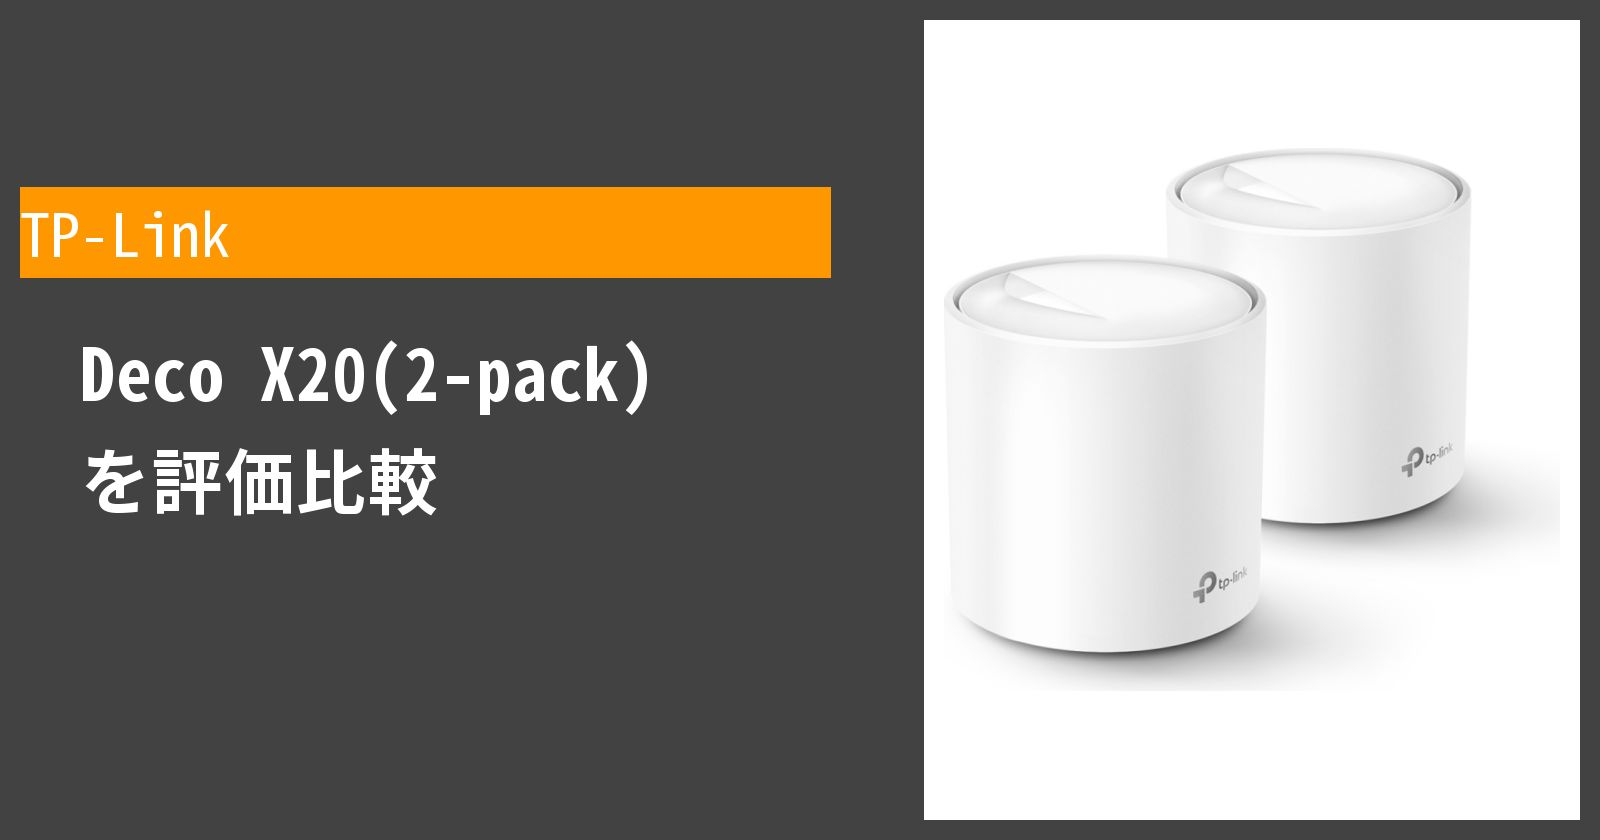 Deco X20(2-pack)を徹底評価